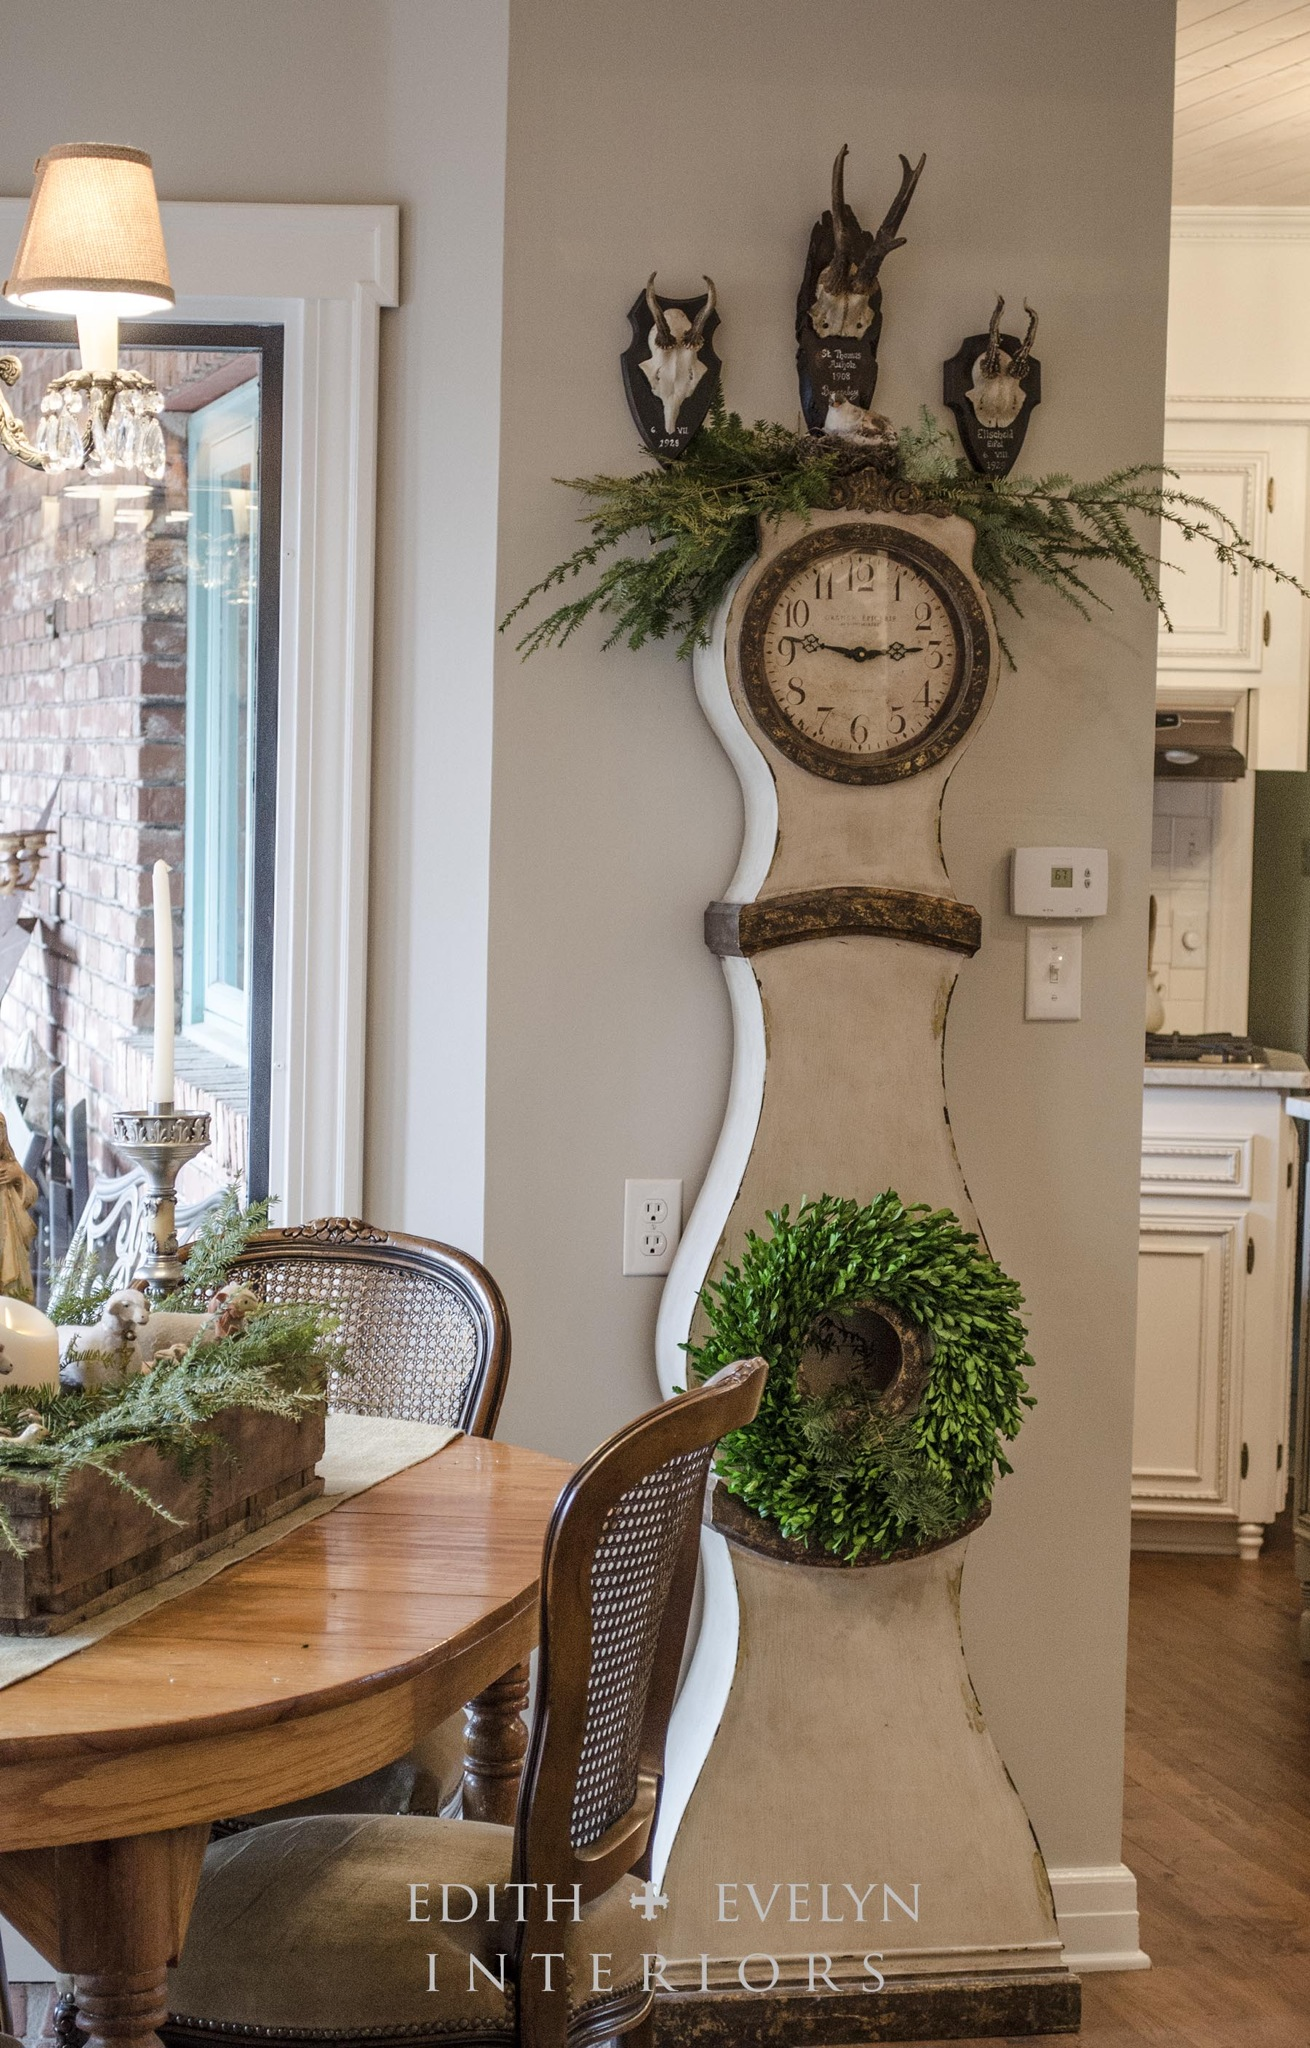 Simple Christmas Decor and A Mannequin Tree | Edith & Evelyn | www.edithandevelynvintage.com